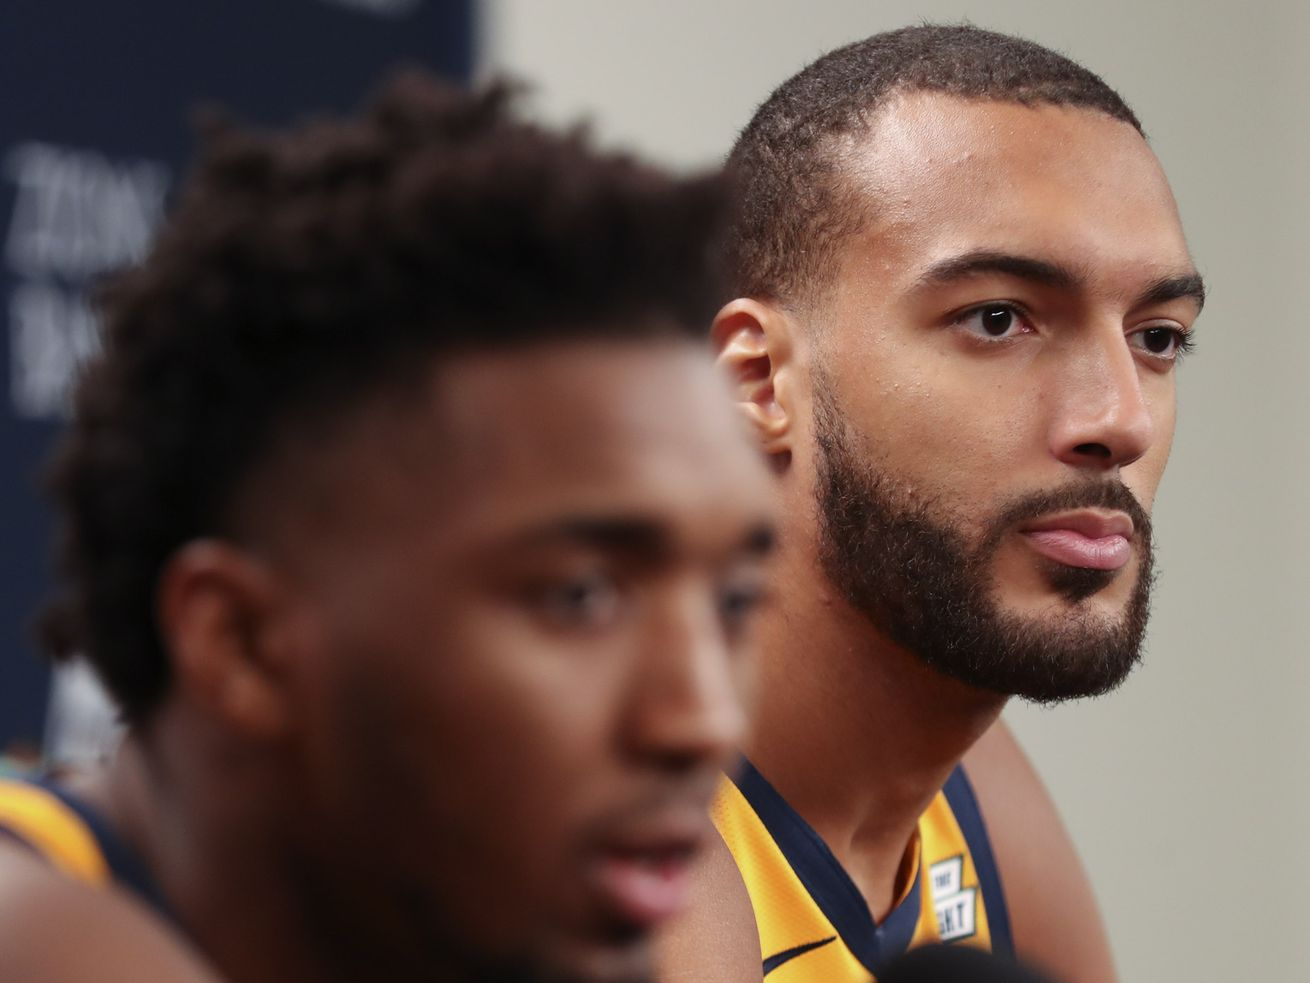 Jazz players step up and speak out against bullying